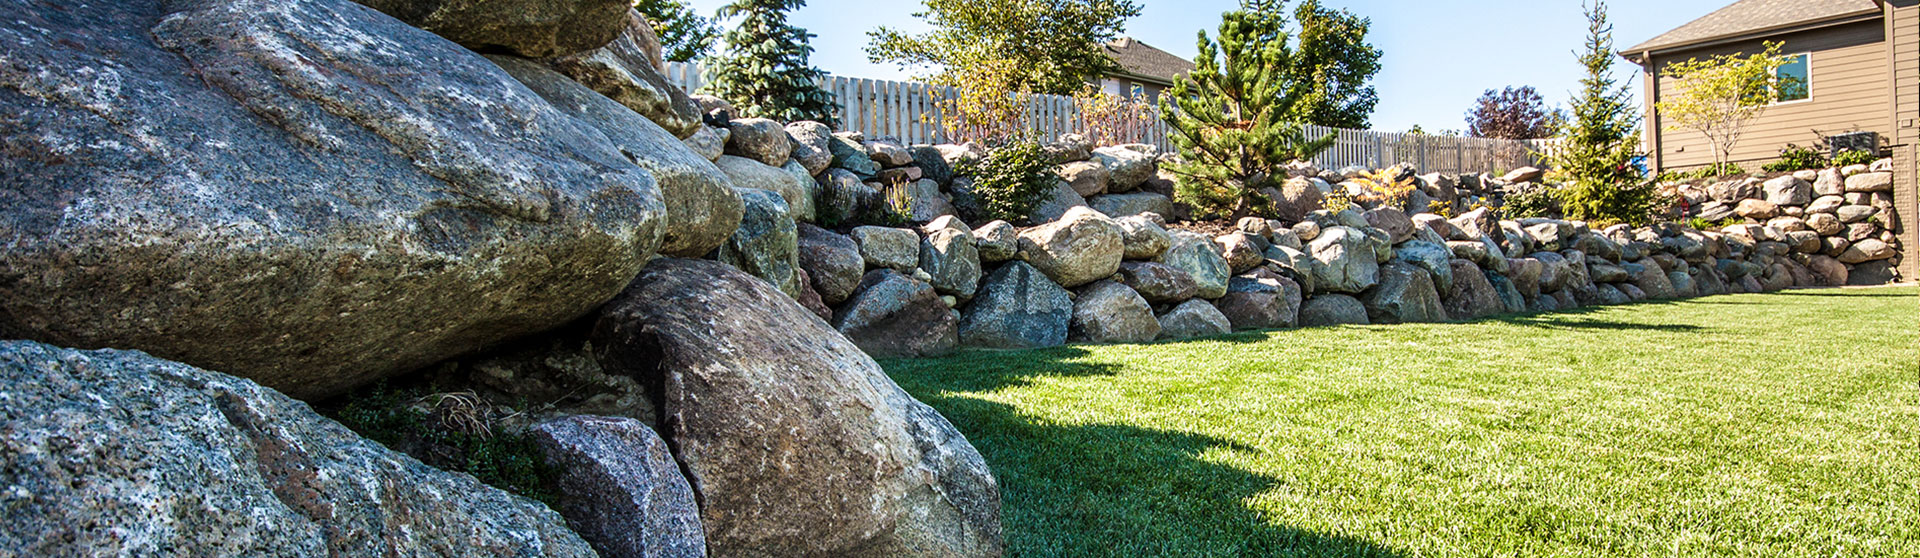 CarsonStone-Boulders2